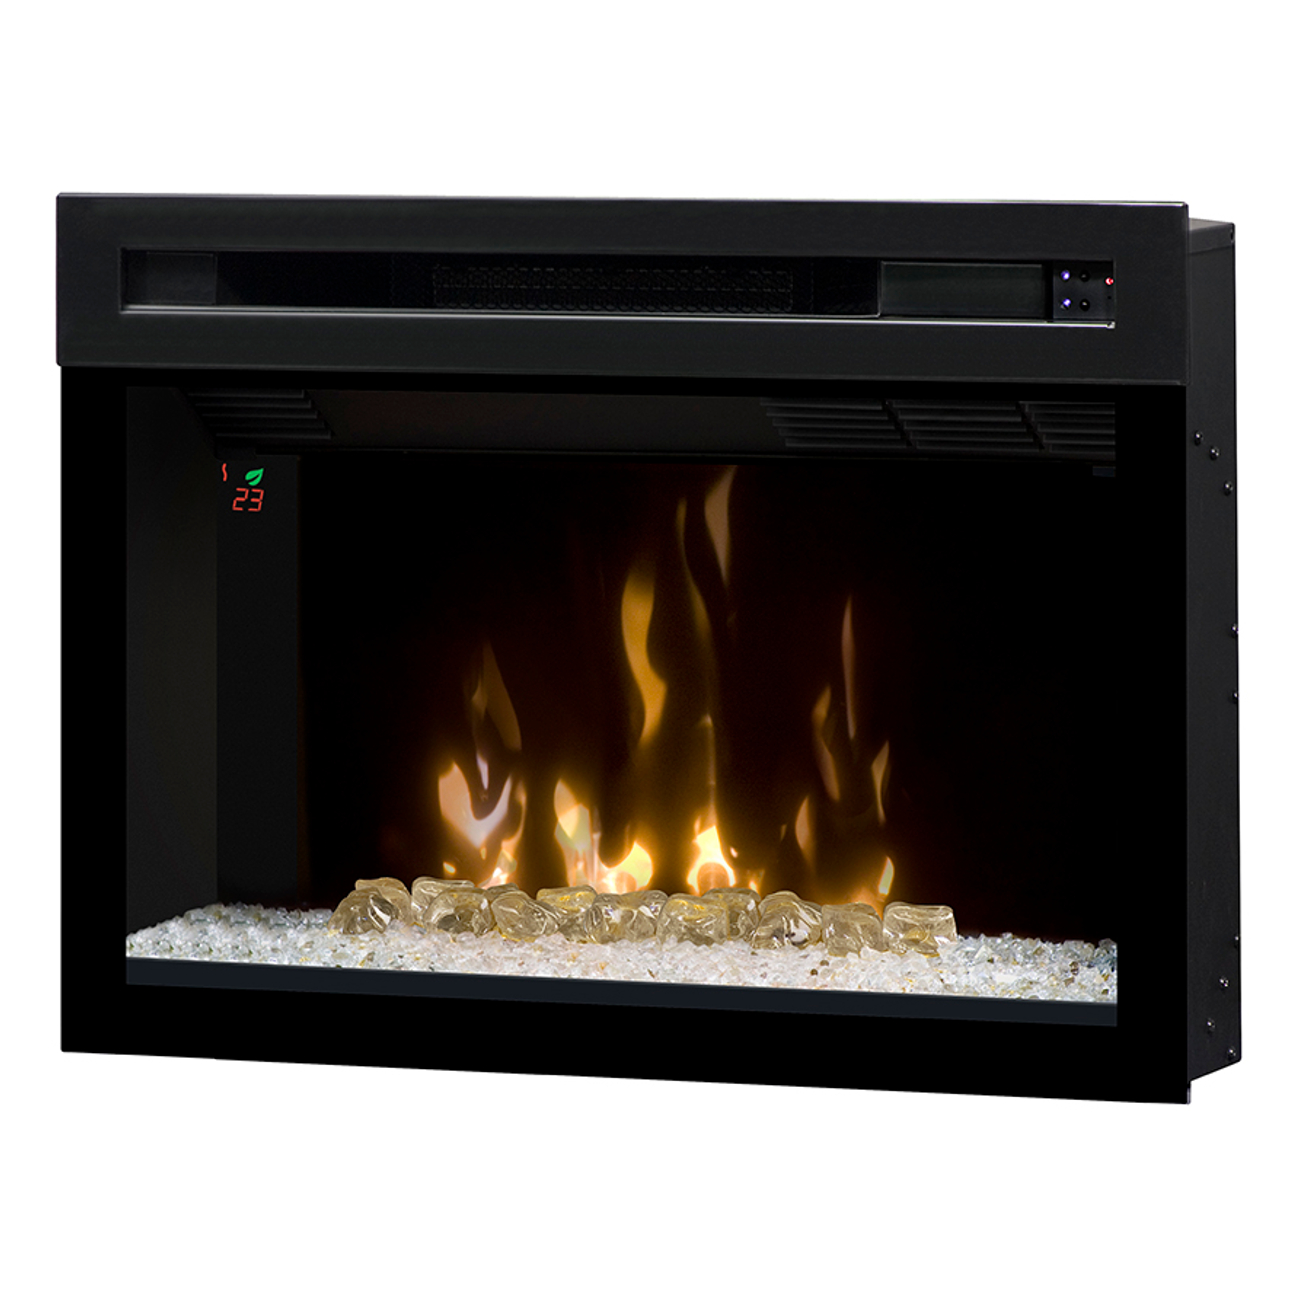 Dimplex 25-Inch Multi-Fire XD™ Electric Fireplace Insert PF2325HG